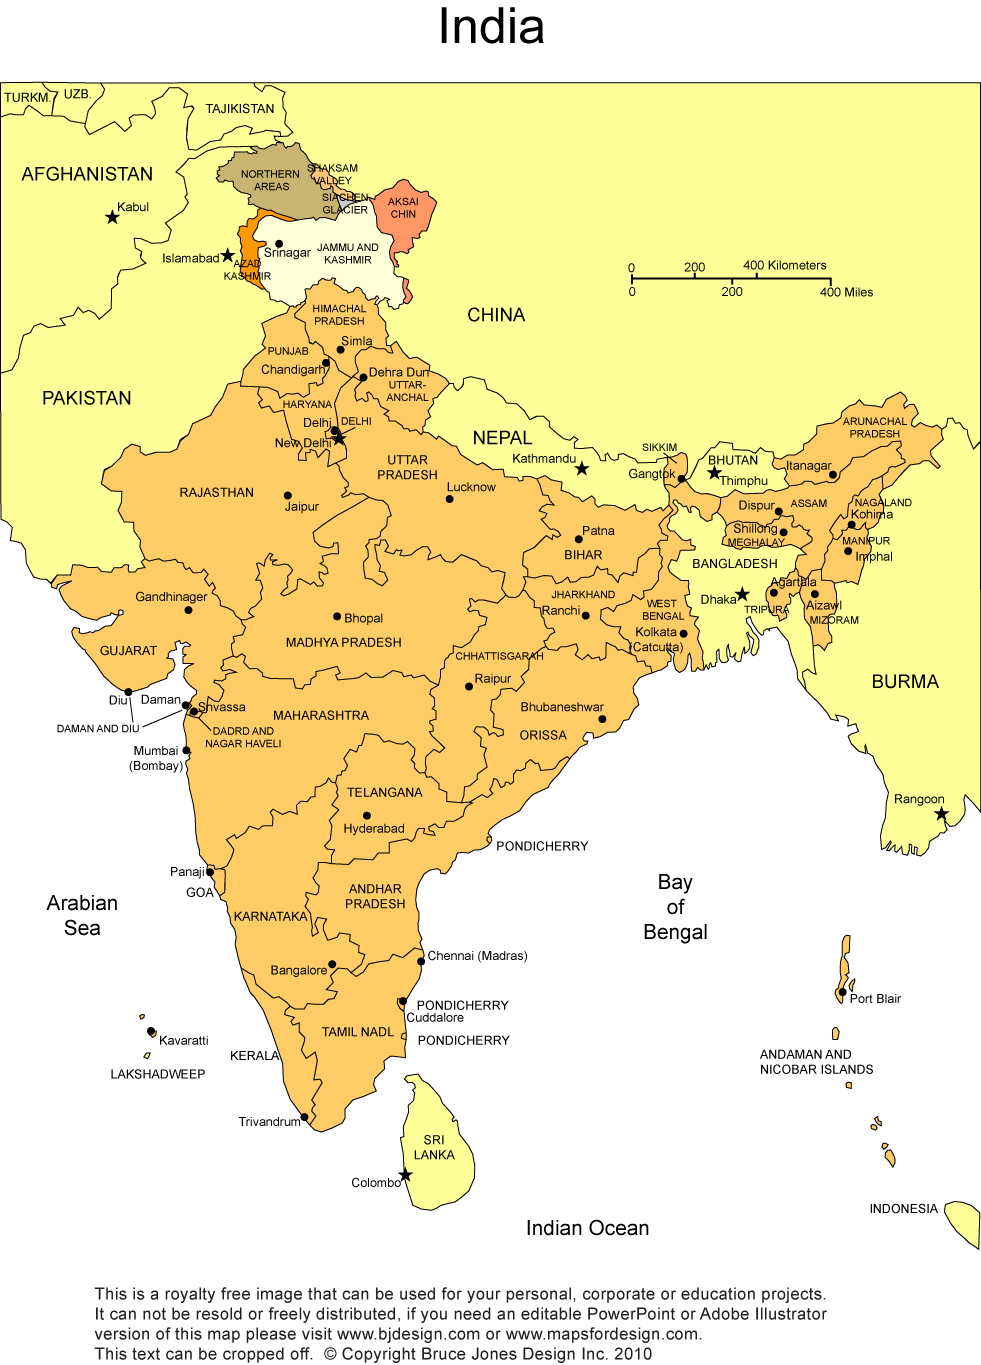 India Printable, Blank Maps, Outline Maps • Royalty Free on united states map no states, india and bangladesh, india map with city, white us map with states, map showing all states, india map with himalayan mountains, germany map german states, india provinces states, india big cities and states, telangana india map with states, india bangalore palace, 2014 right to work states, india map with just states, india map with state boundaries, india map with word, us map with capitals 50 states, map of india with states, red vs. blue states map states, punjab map with states, india and its states,